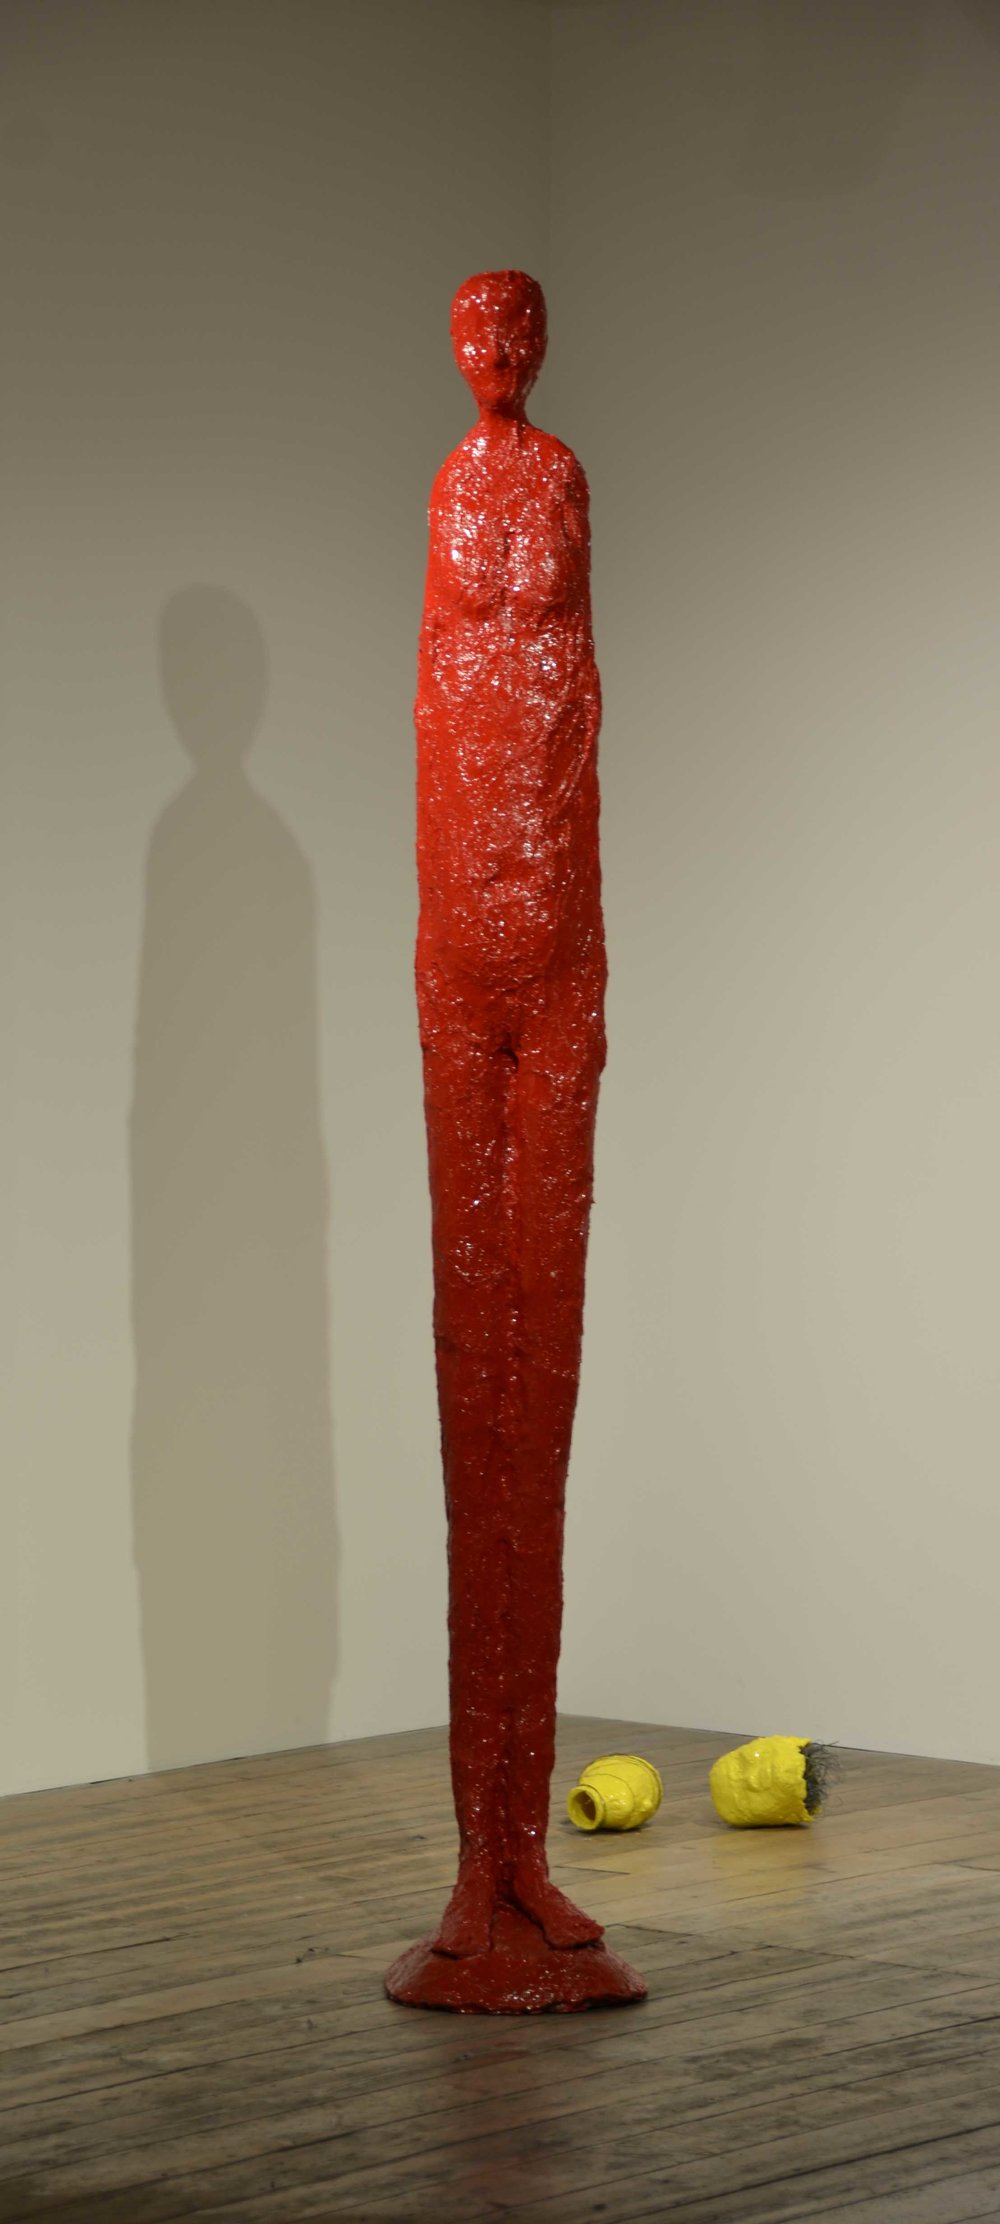 Elisabeth Weissensteiner,  Scarlet Dancer in the Eye of the Storm , 2011, polyester resin, fibreglass and pigments, height 250cm